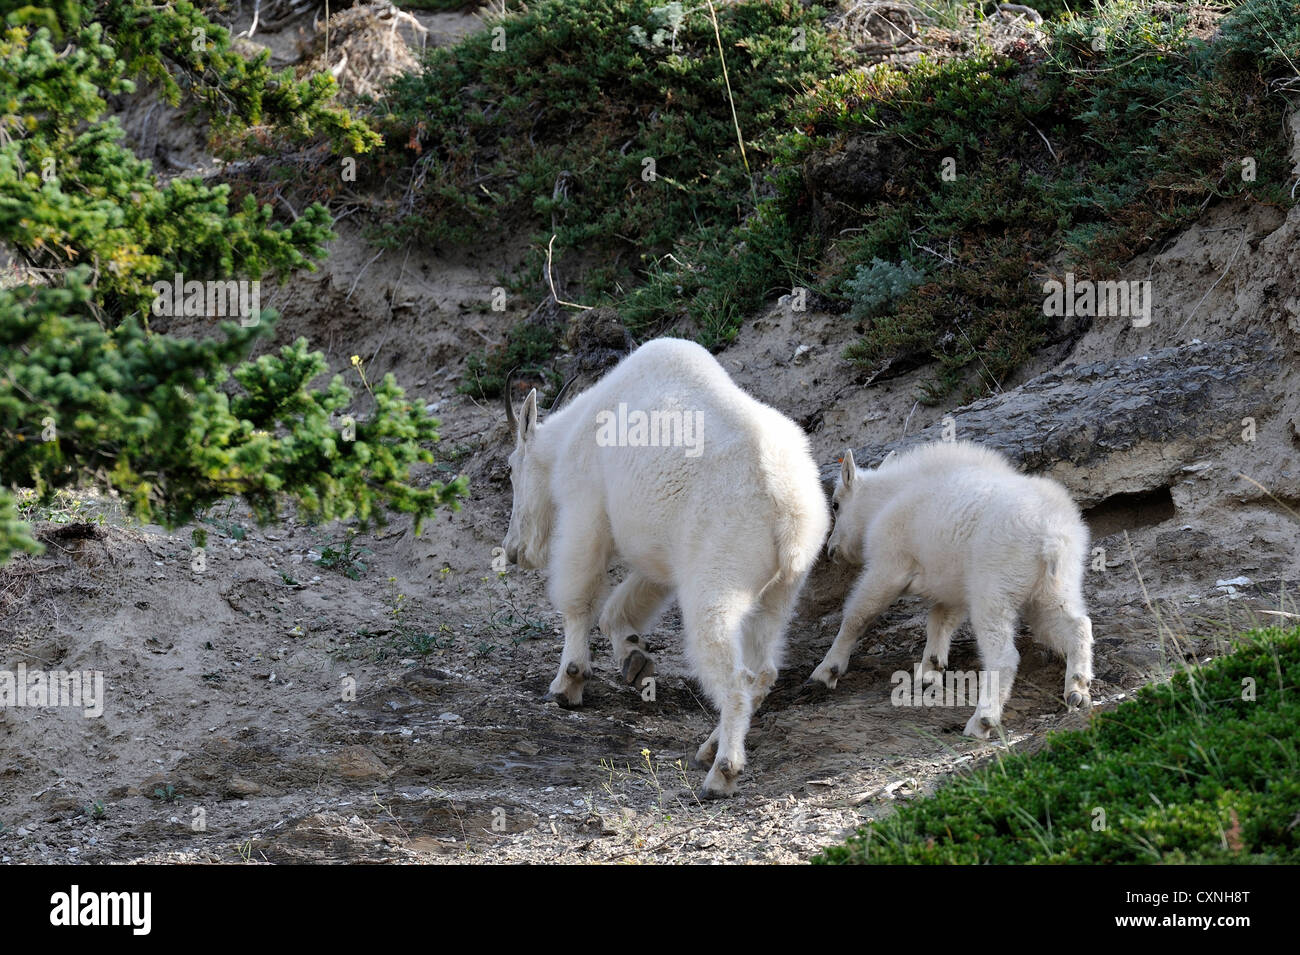 A mother mountain goat with her baby climbing a steep trail along a mountain side - Stock Image